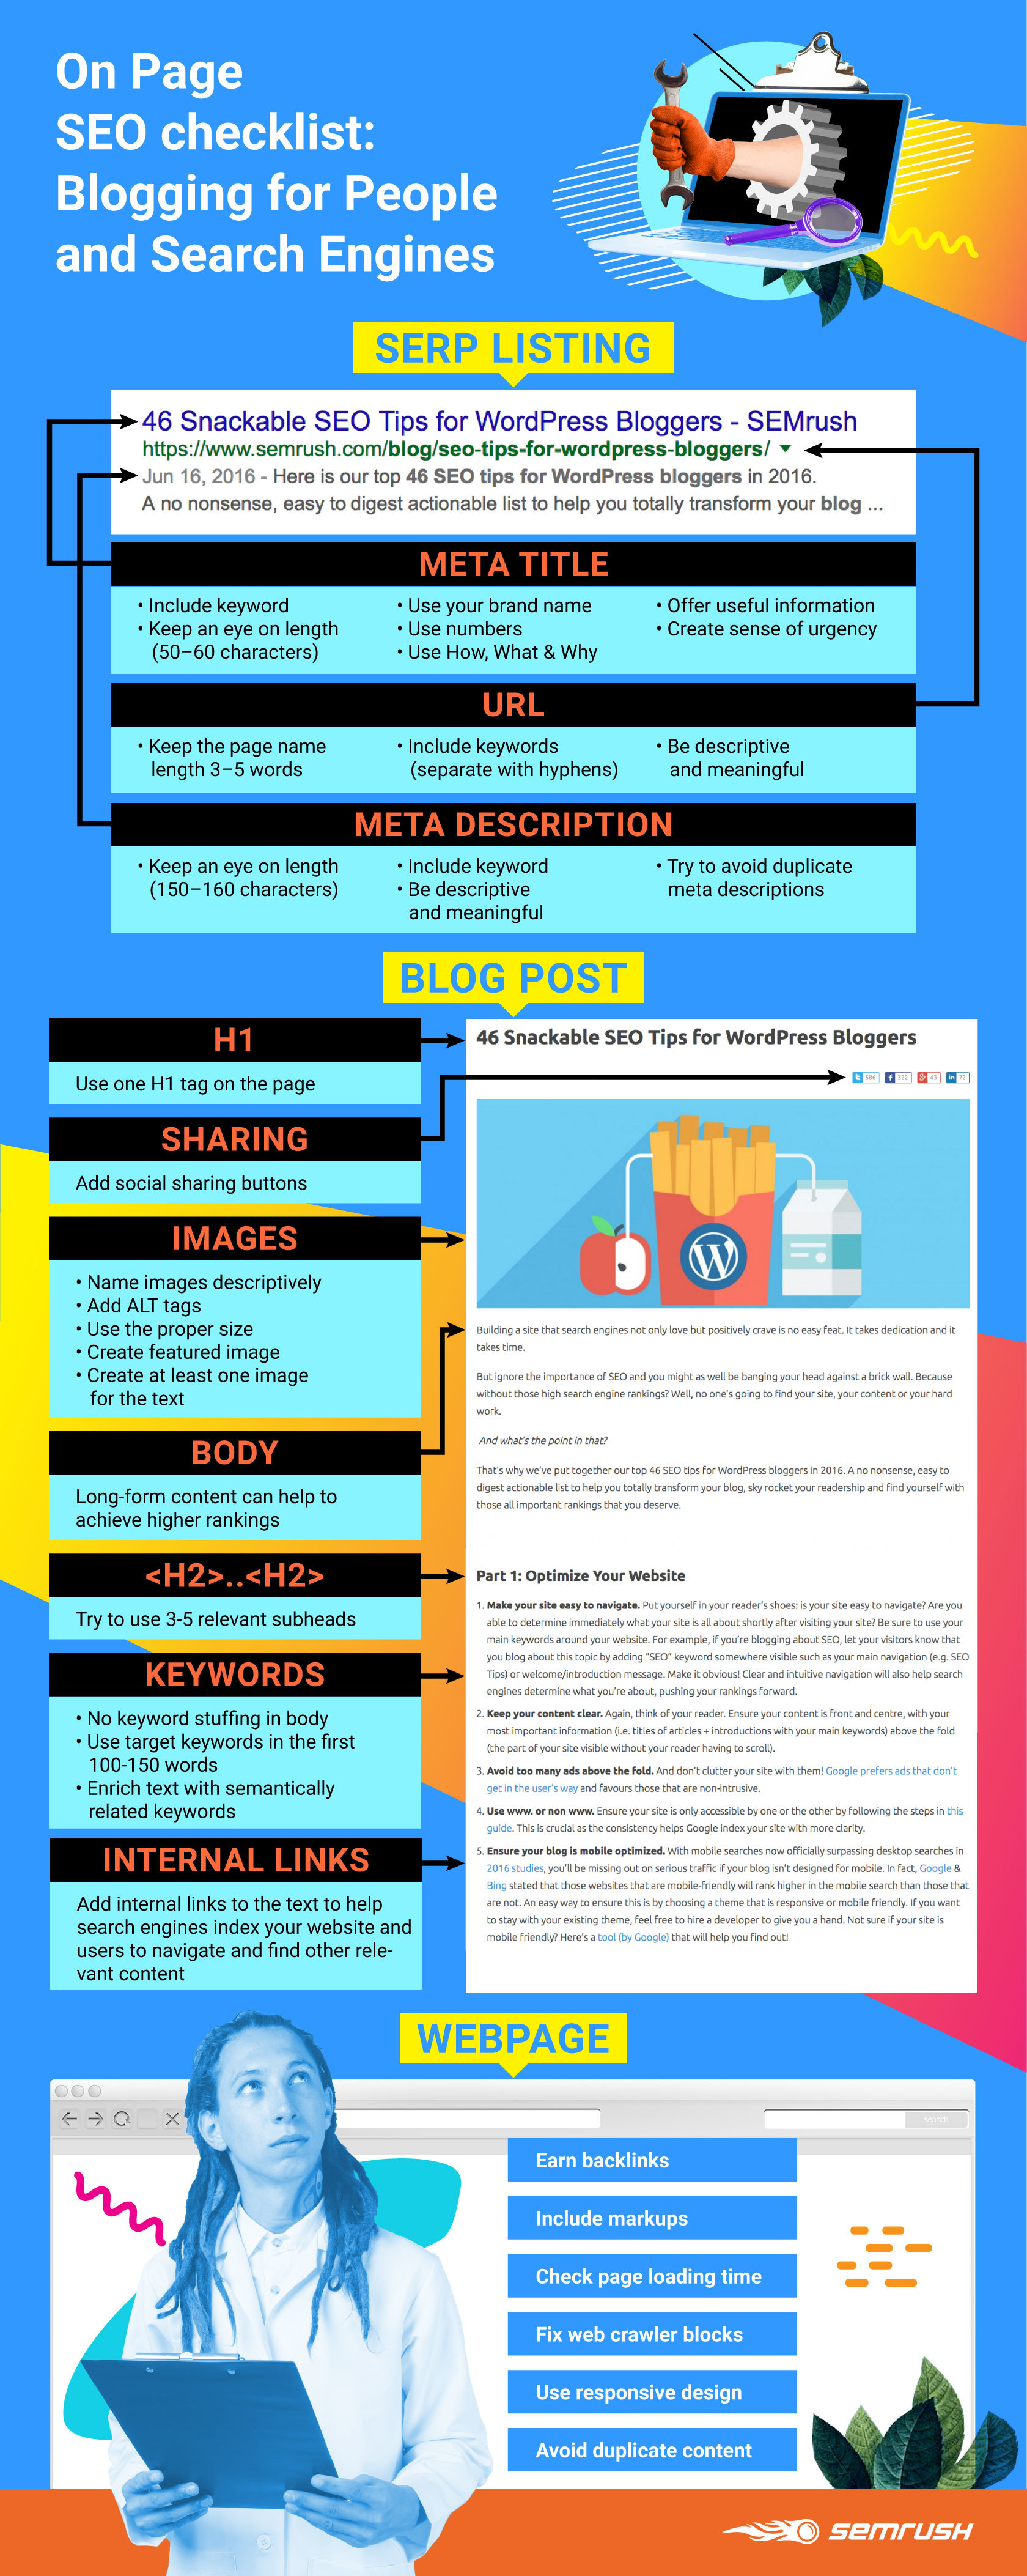 Infographic with tips on SEO optimization.